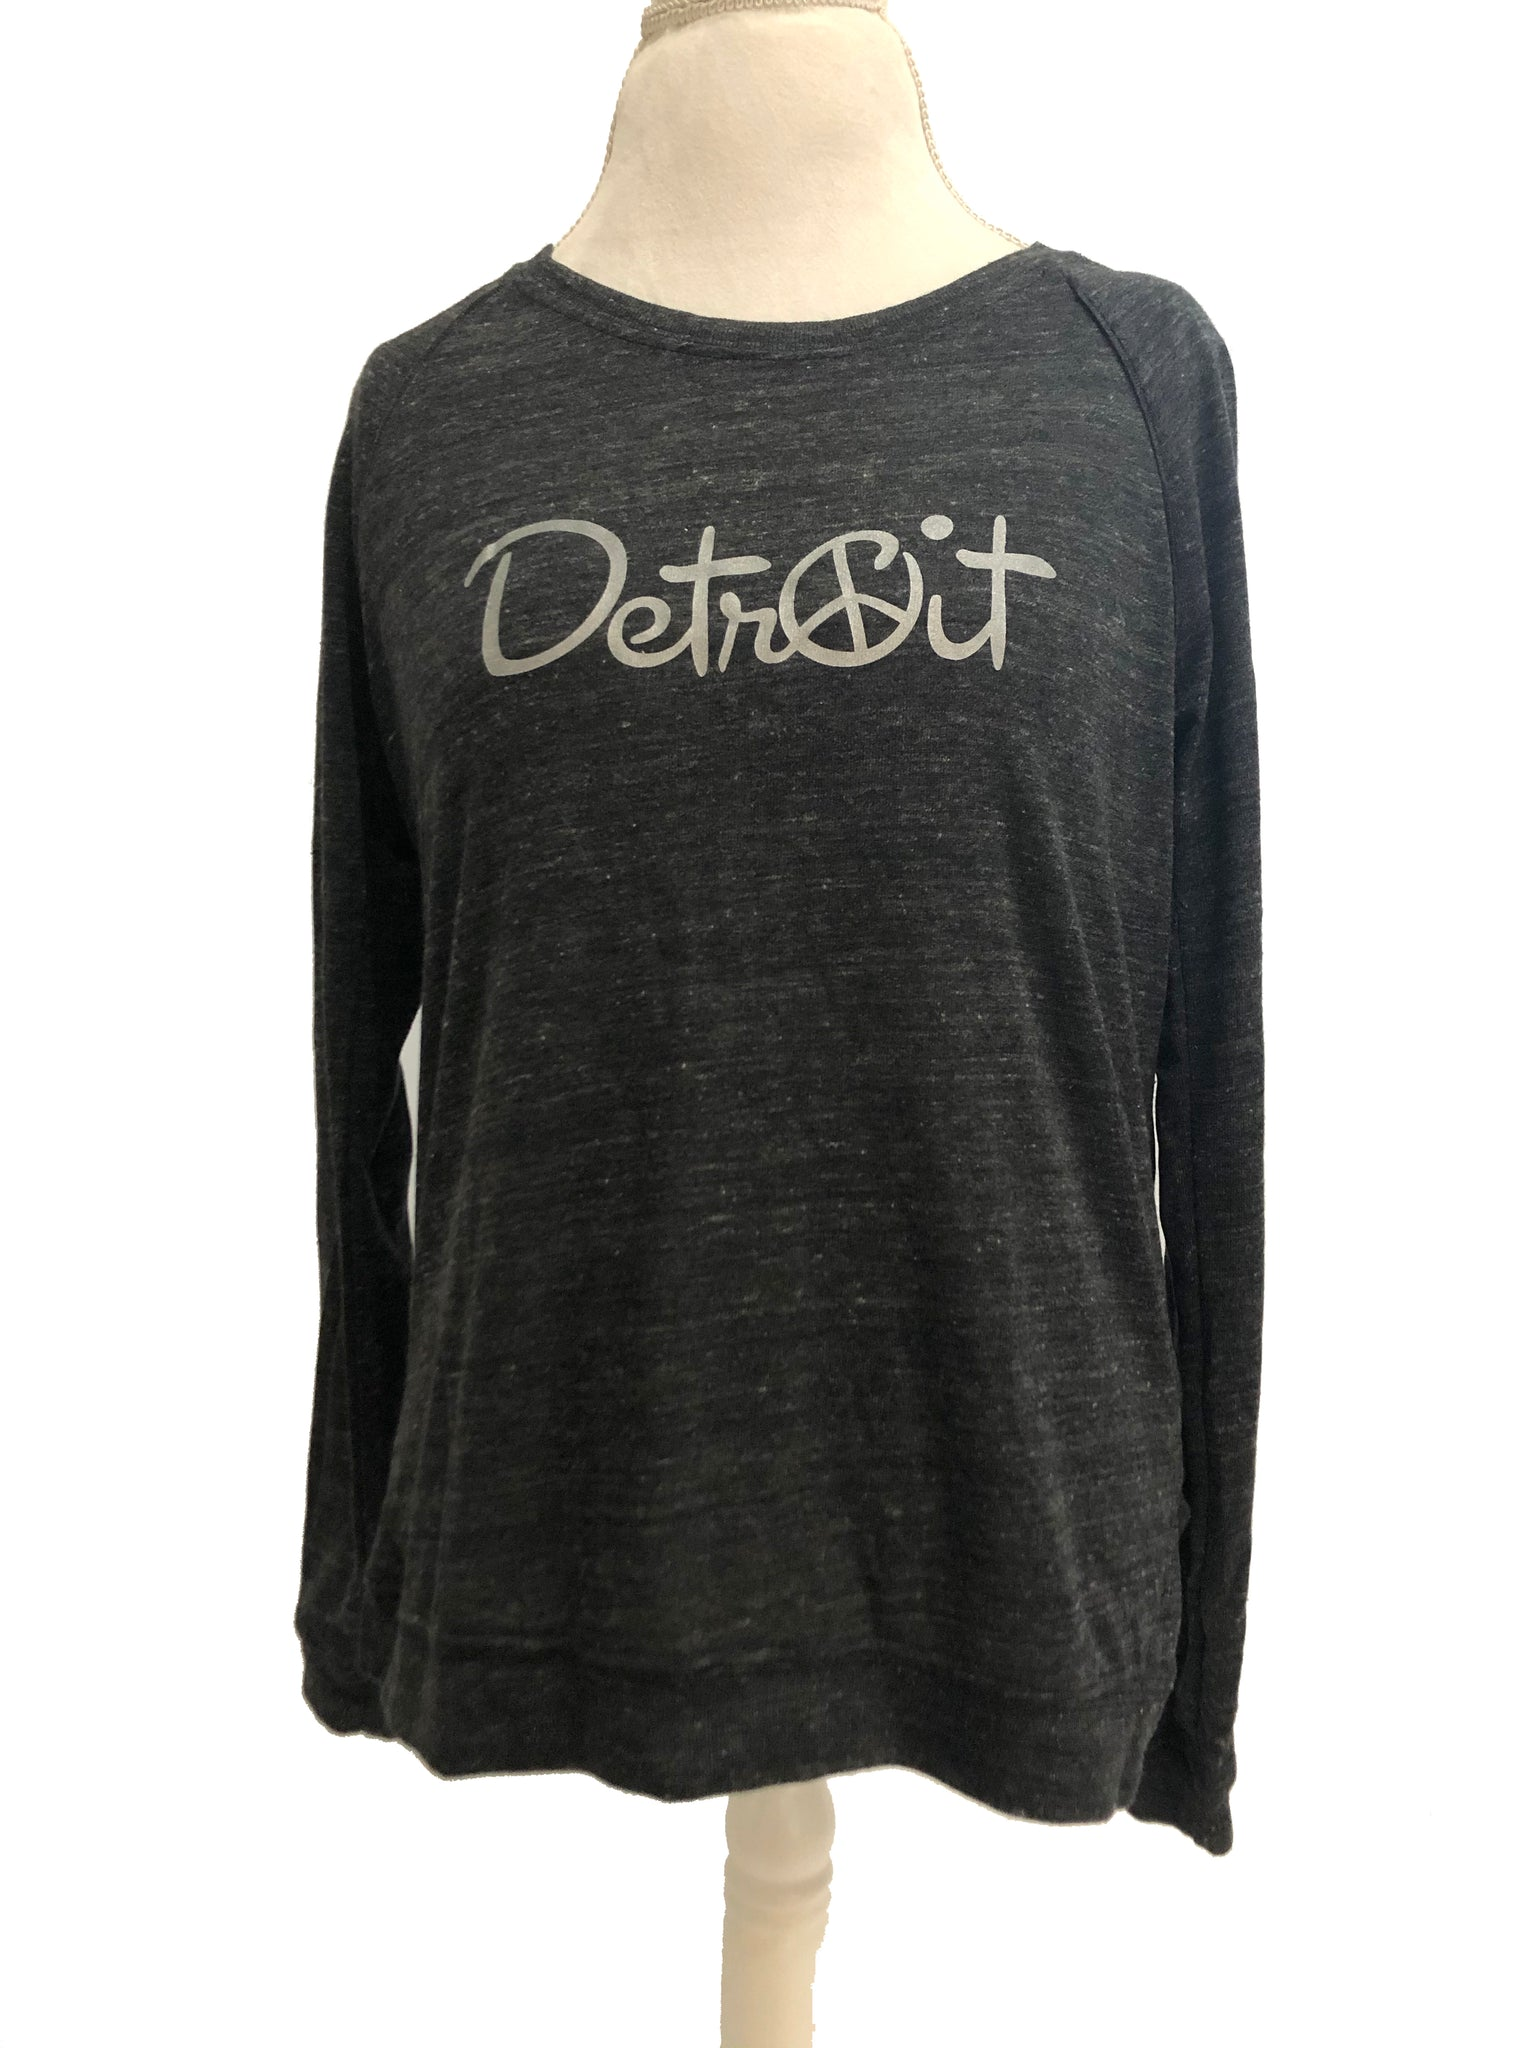 Long sleeve Peace Detroit Eco Jersey pullover